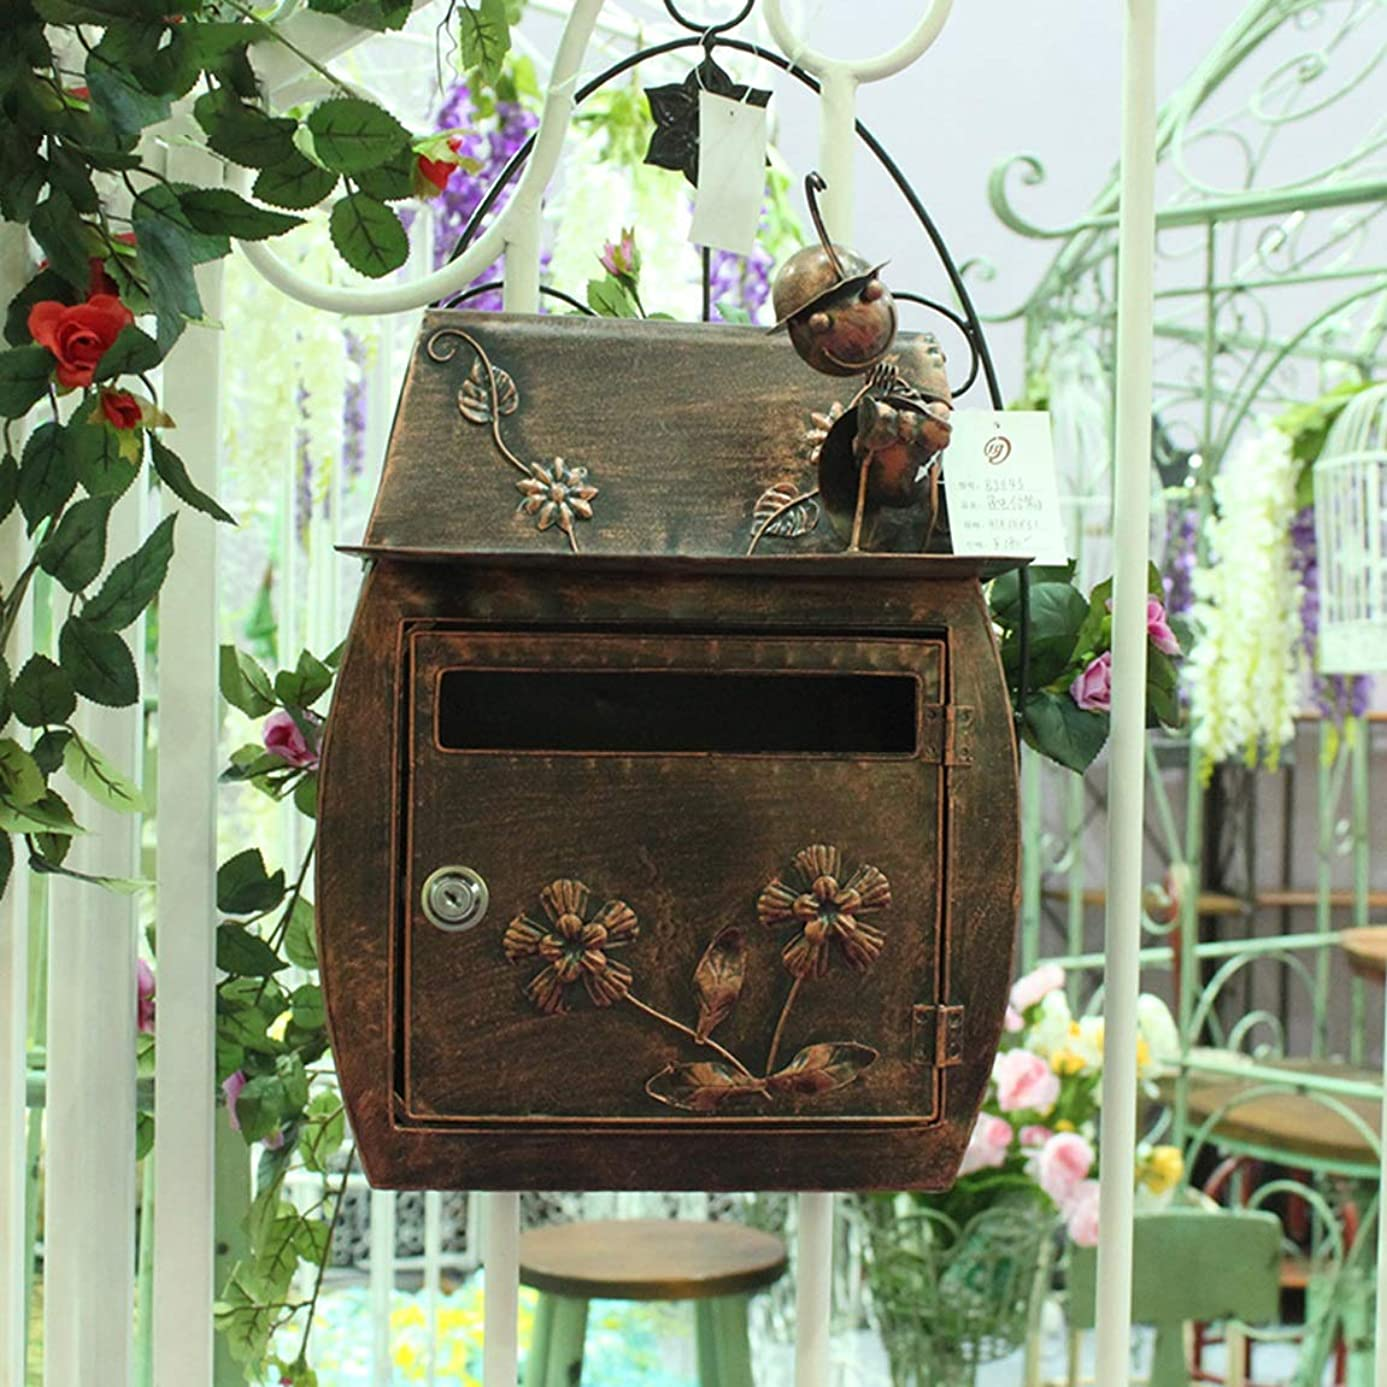 Fly European Classical Villa Mail Box Pastoral Retro Wall with Lock Letter Box Mailbox Waterproof Outdoor Mailbox Mailbox